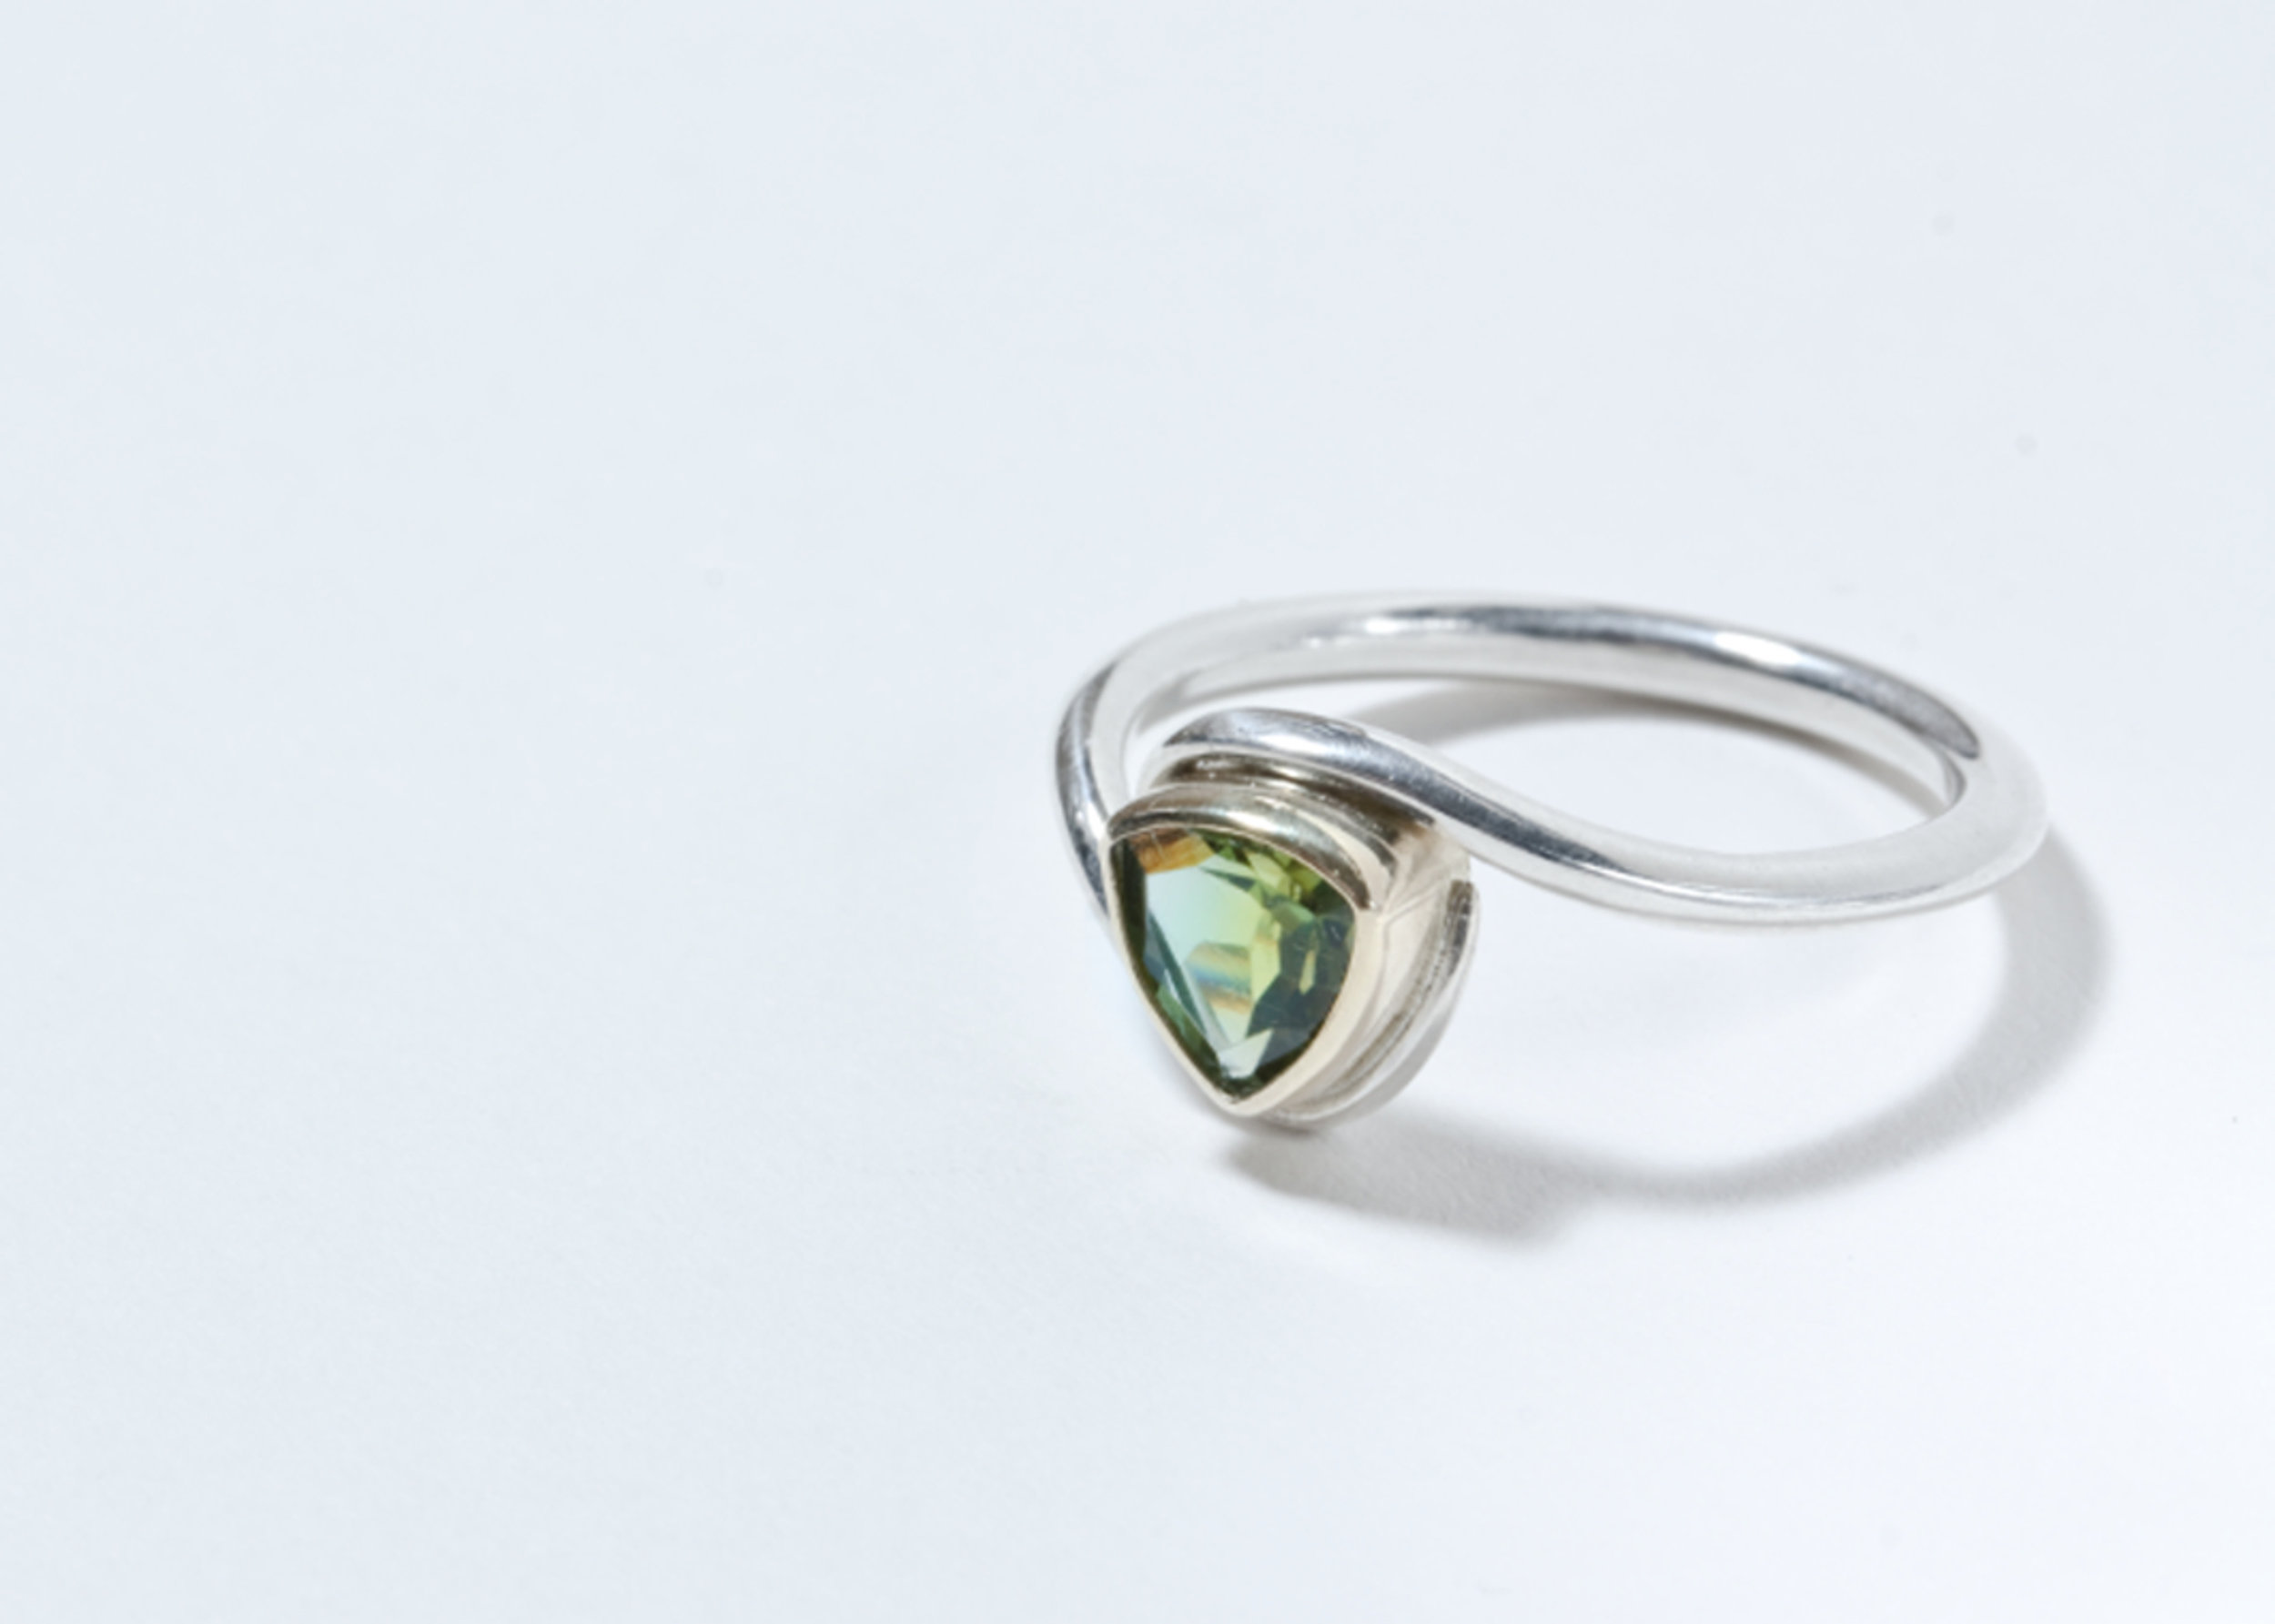 Contemporary Jewellery Design Inspired By Nature